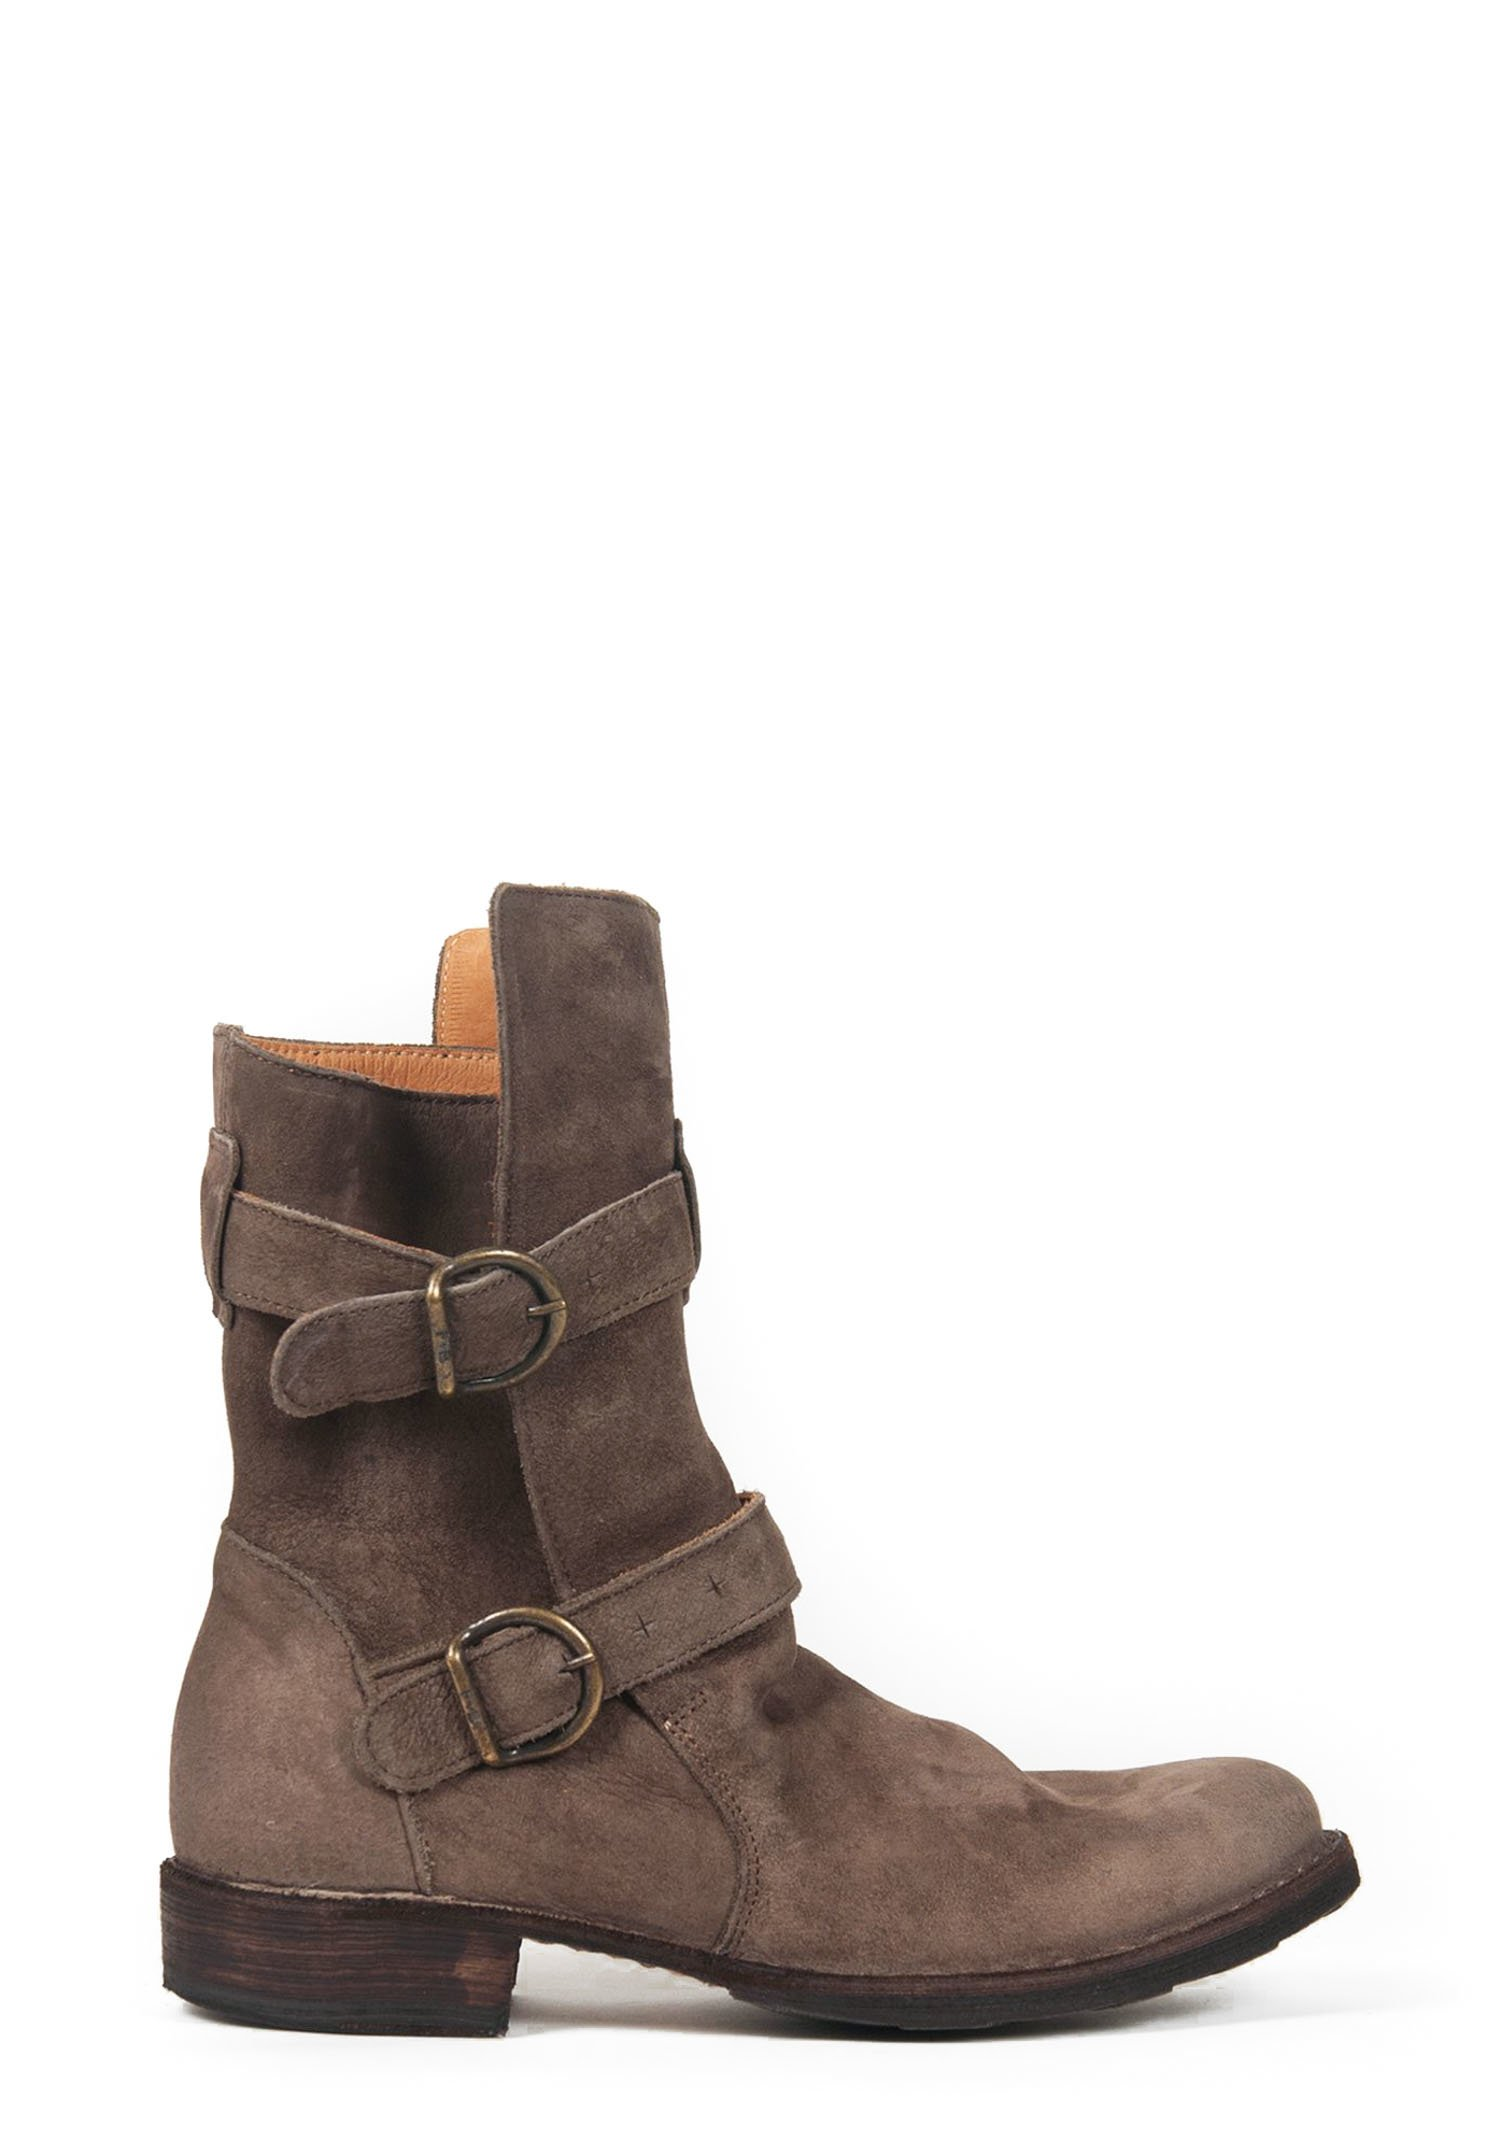 fiorentini and baker 2 buckle eternity boot in ice suede. Black Bedroom Furniture Sets. Home Design Ideas